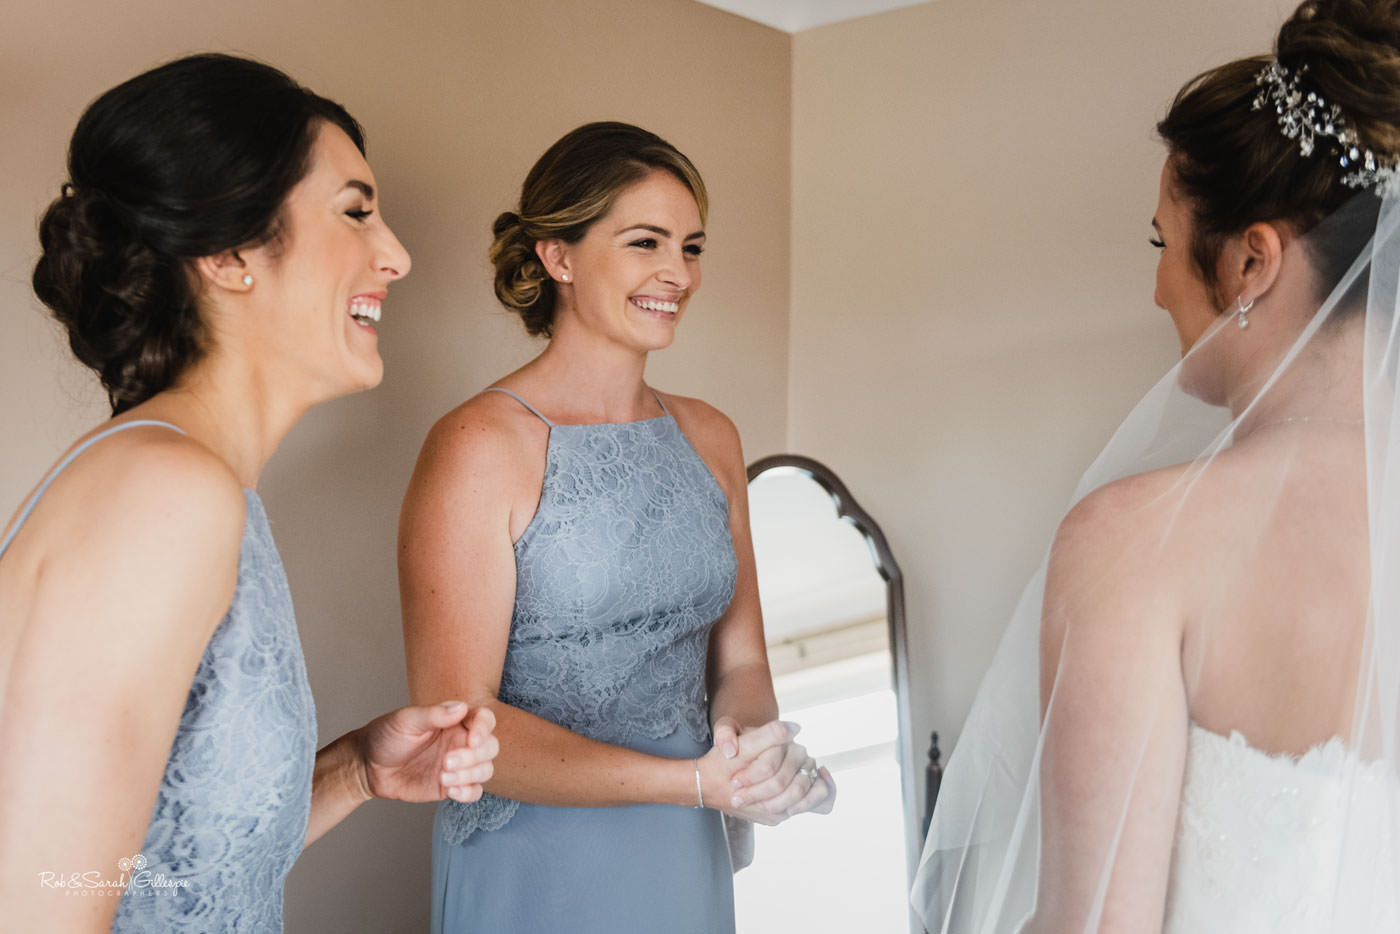 Bridesmaids laughing with bride as she gets ready for wedding